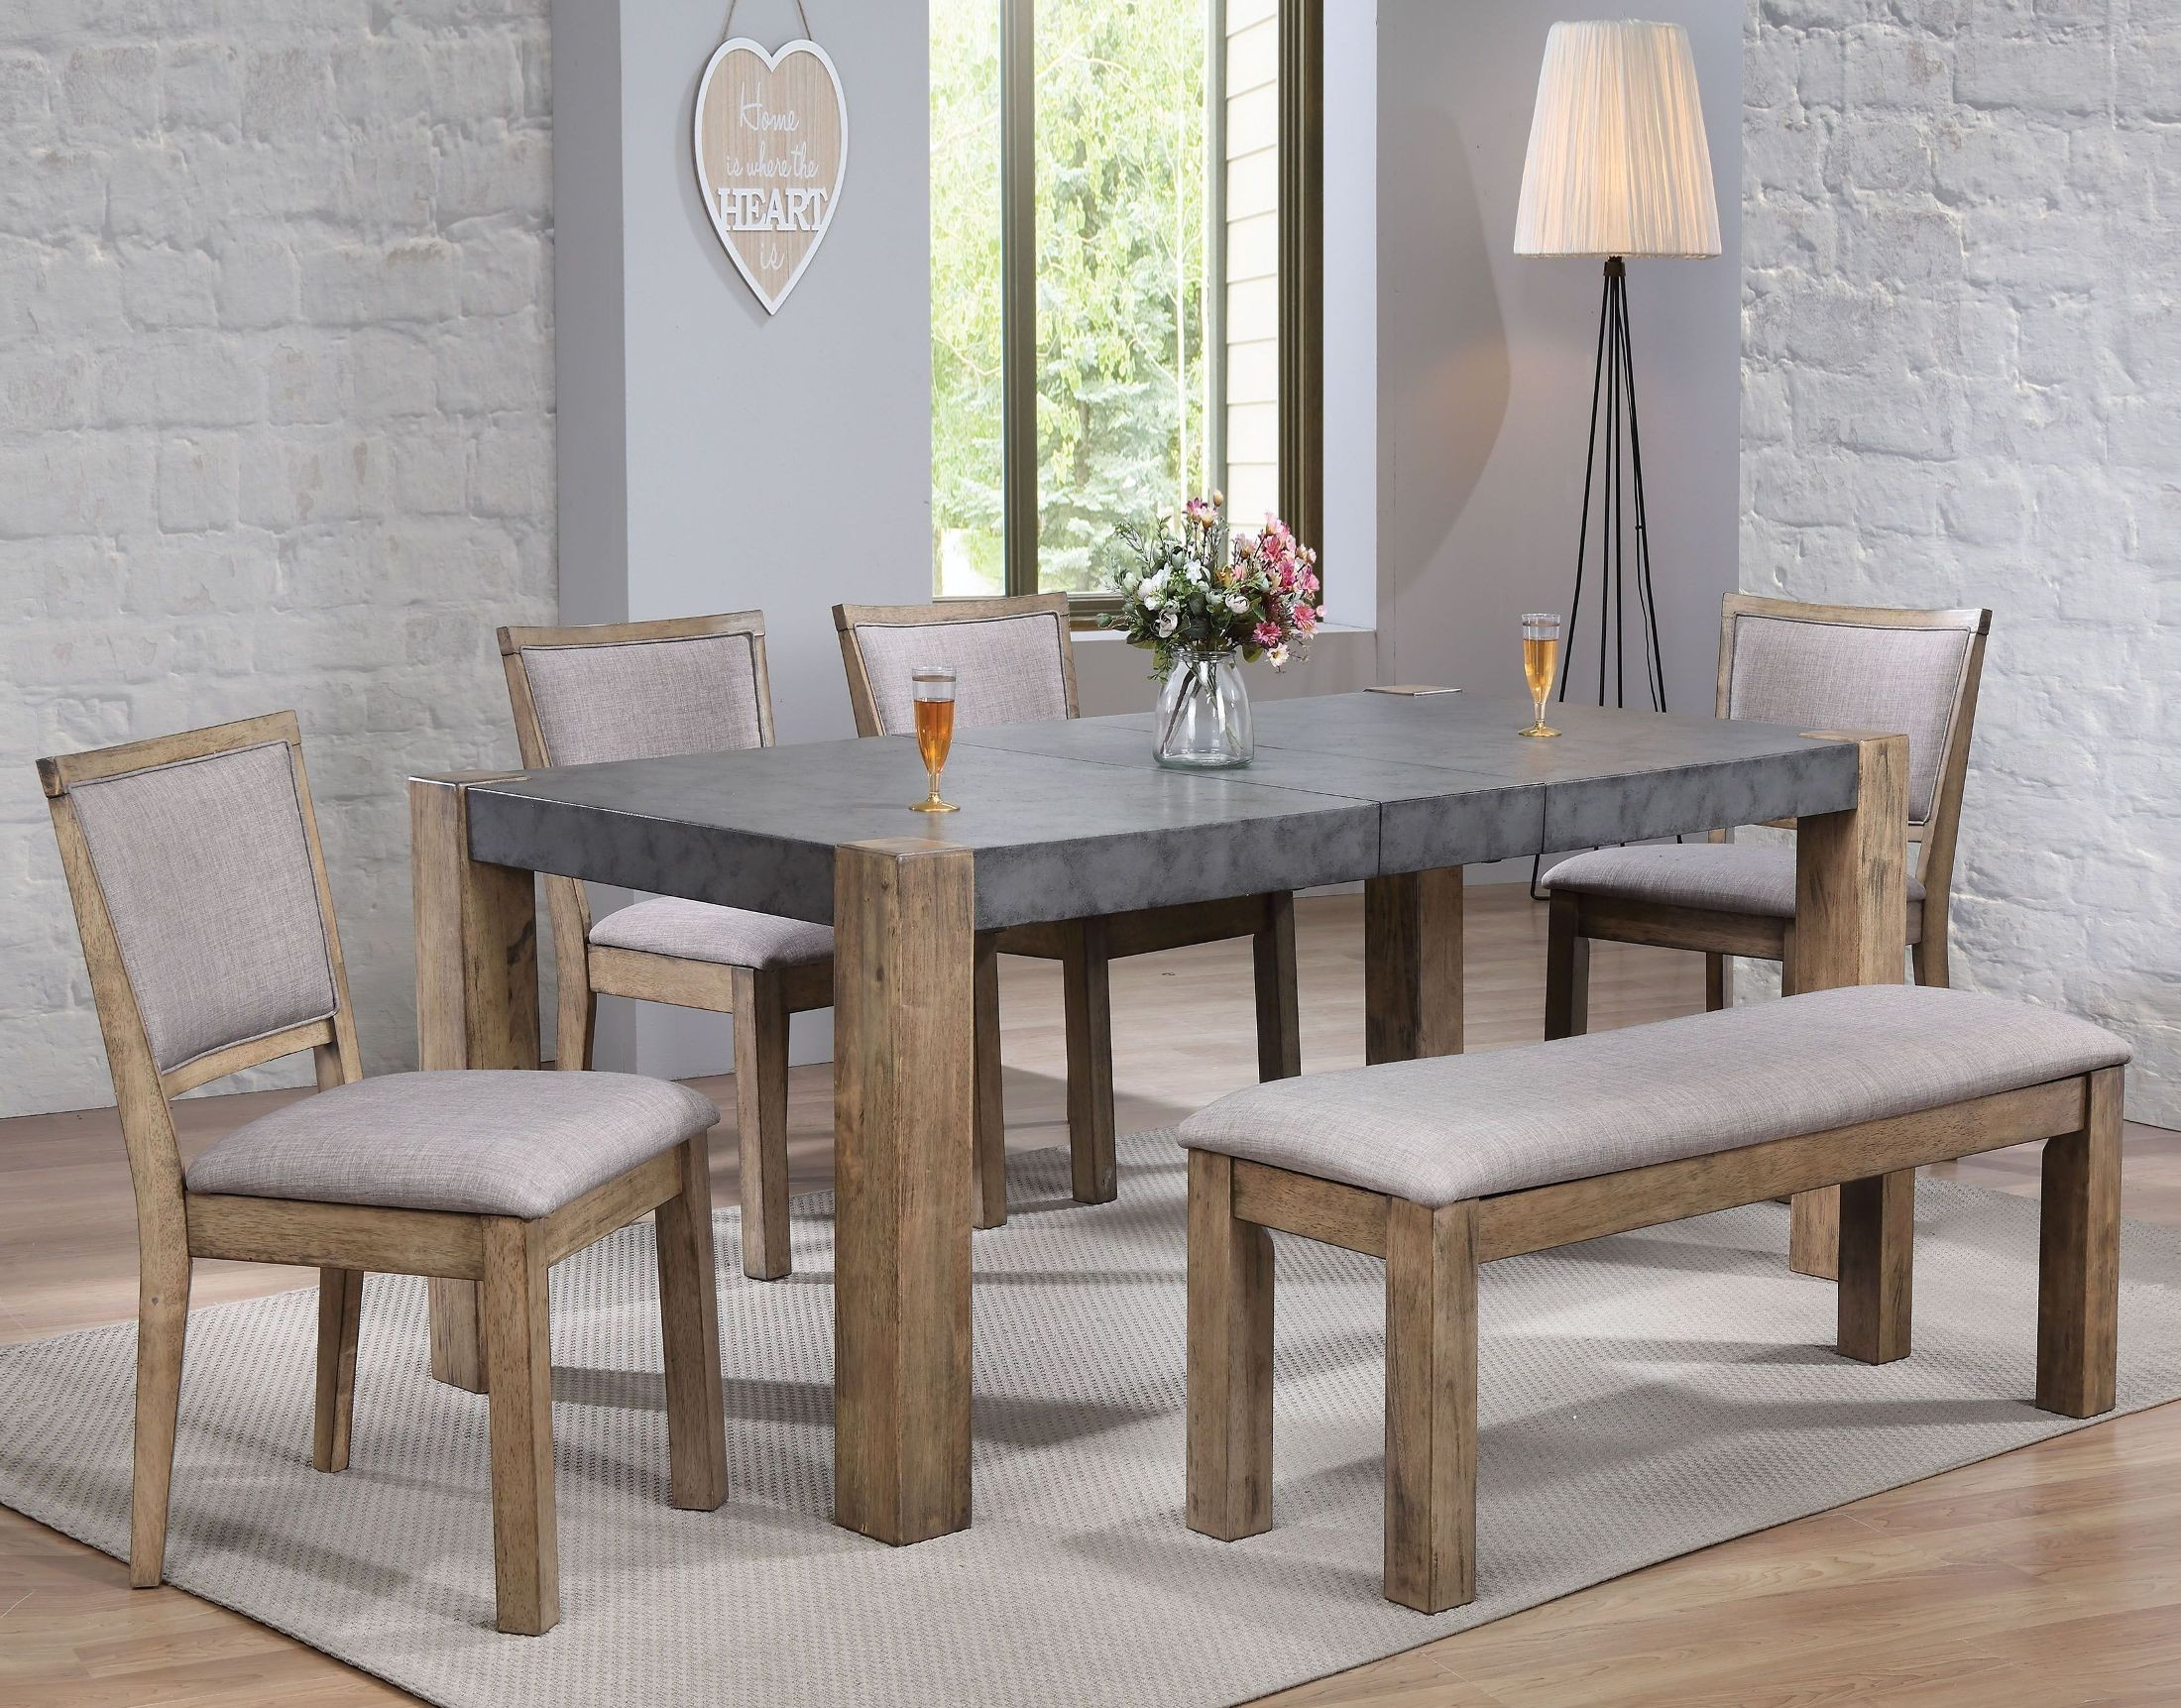 Paulina ii dark gray and rustic oak dining table media gallery 2